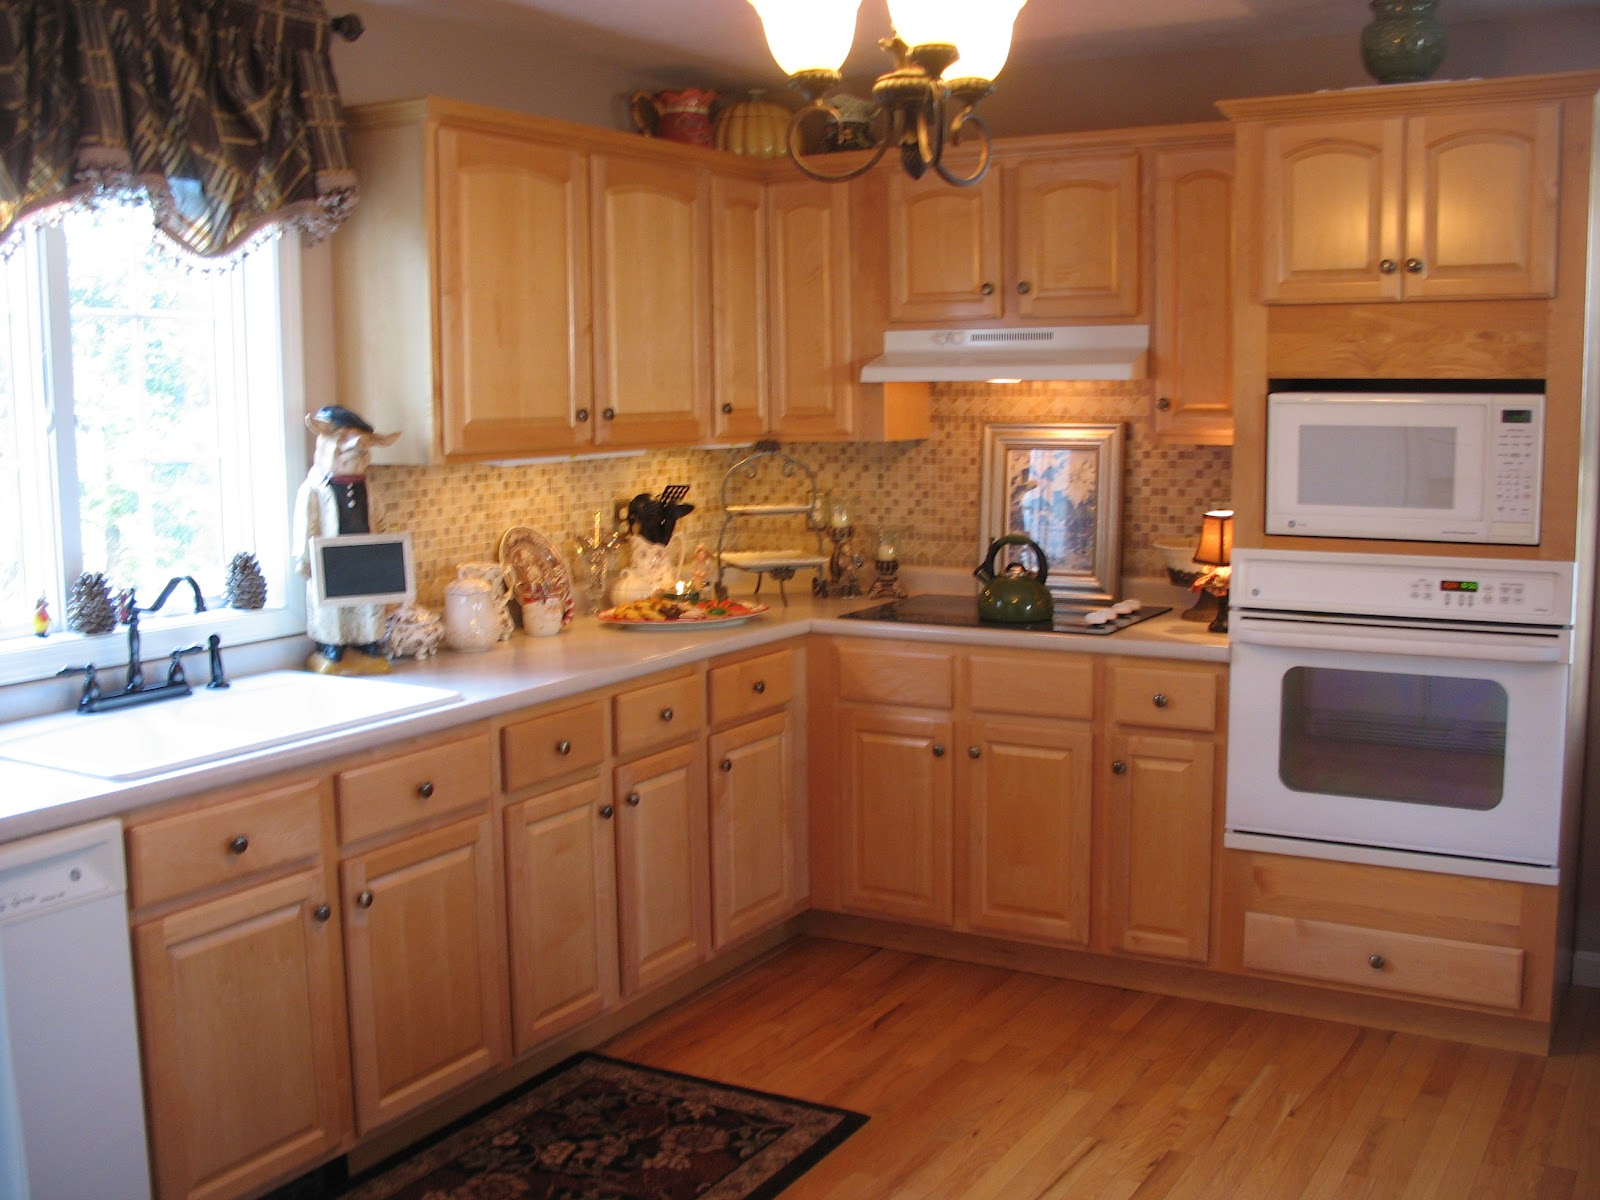 Kitchen Colors With Light Wood Cabinets Furniture Interior Kitchen Paint Colors Ideas S With